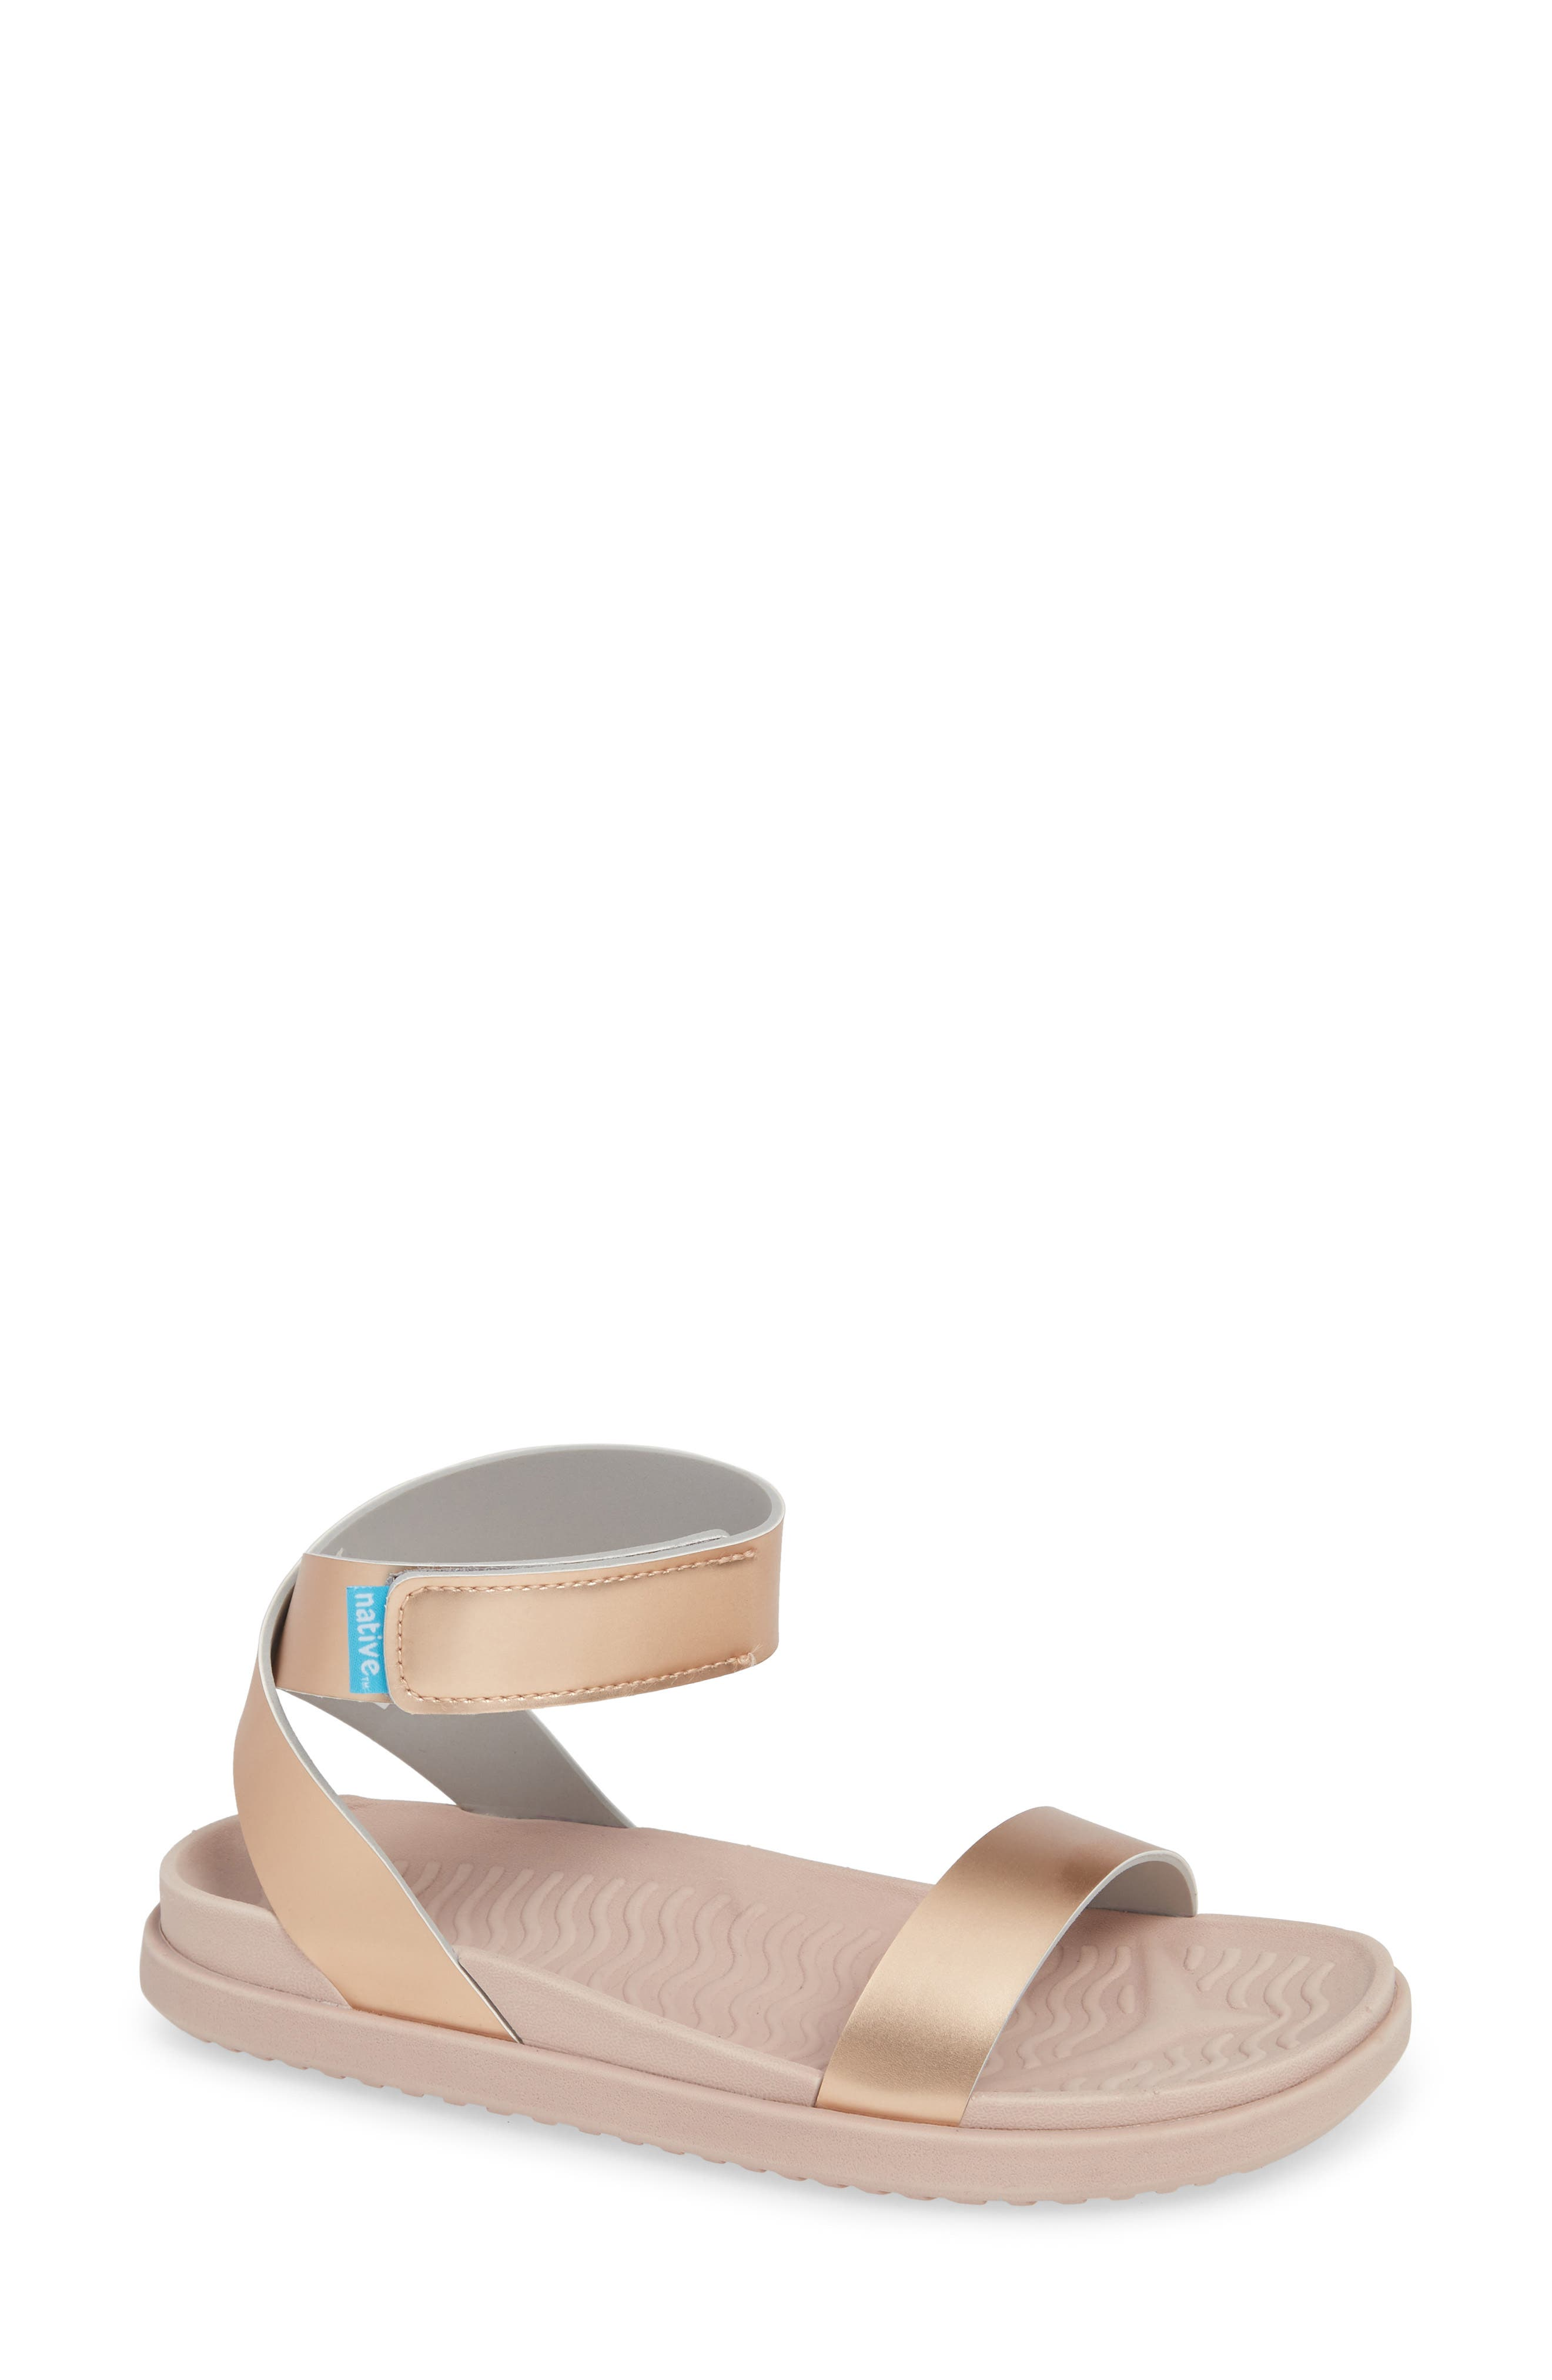 Native Shoes Juliet Vegan Sandal, Pink